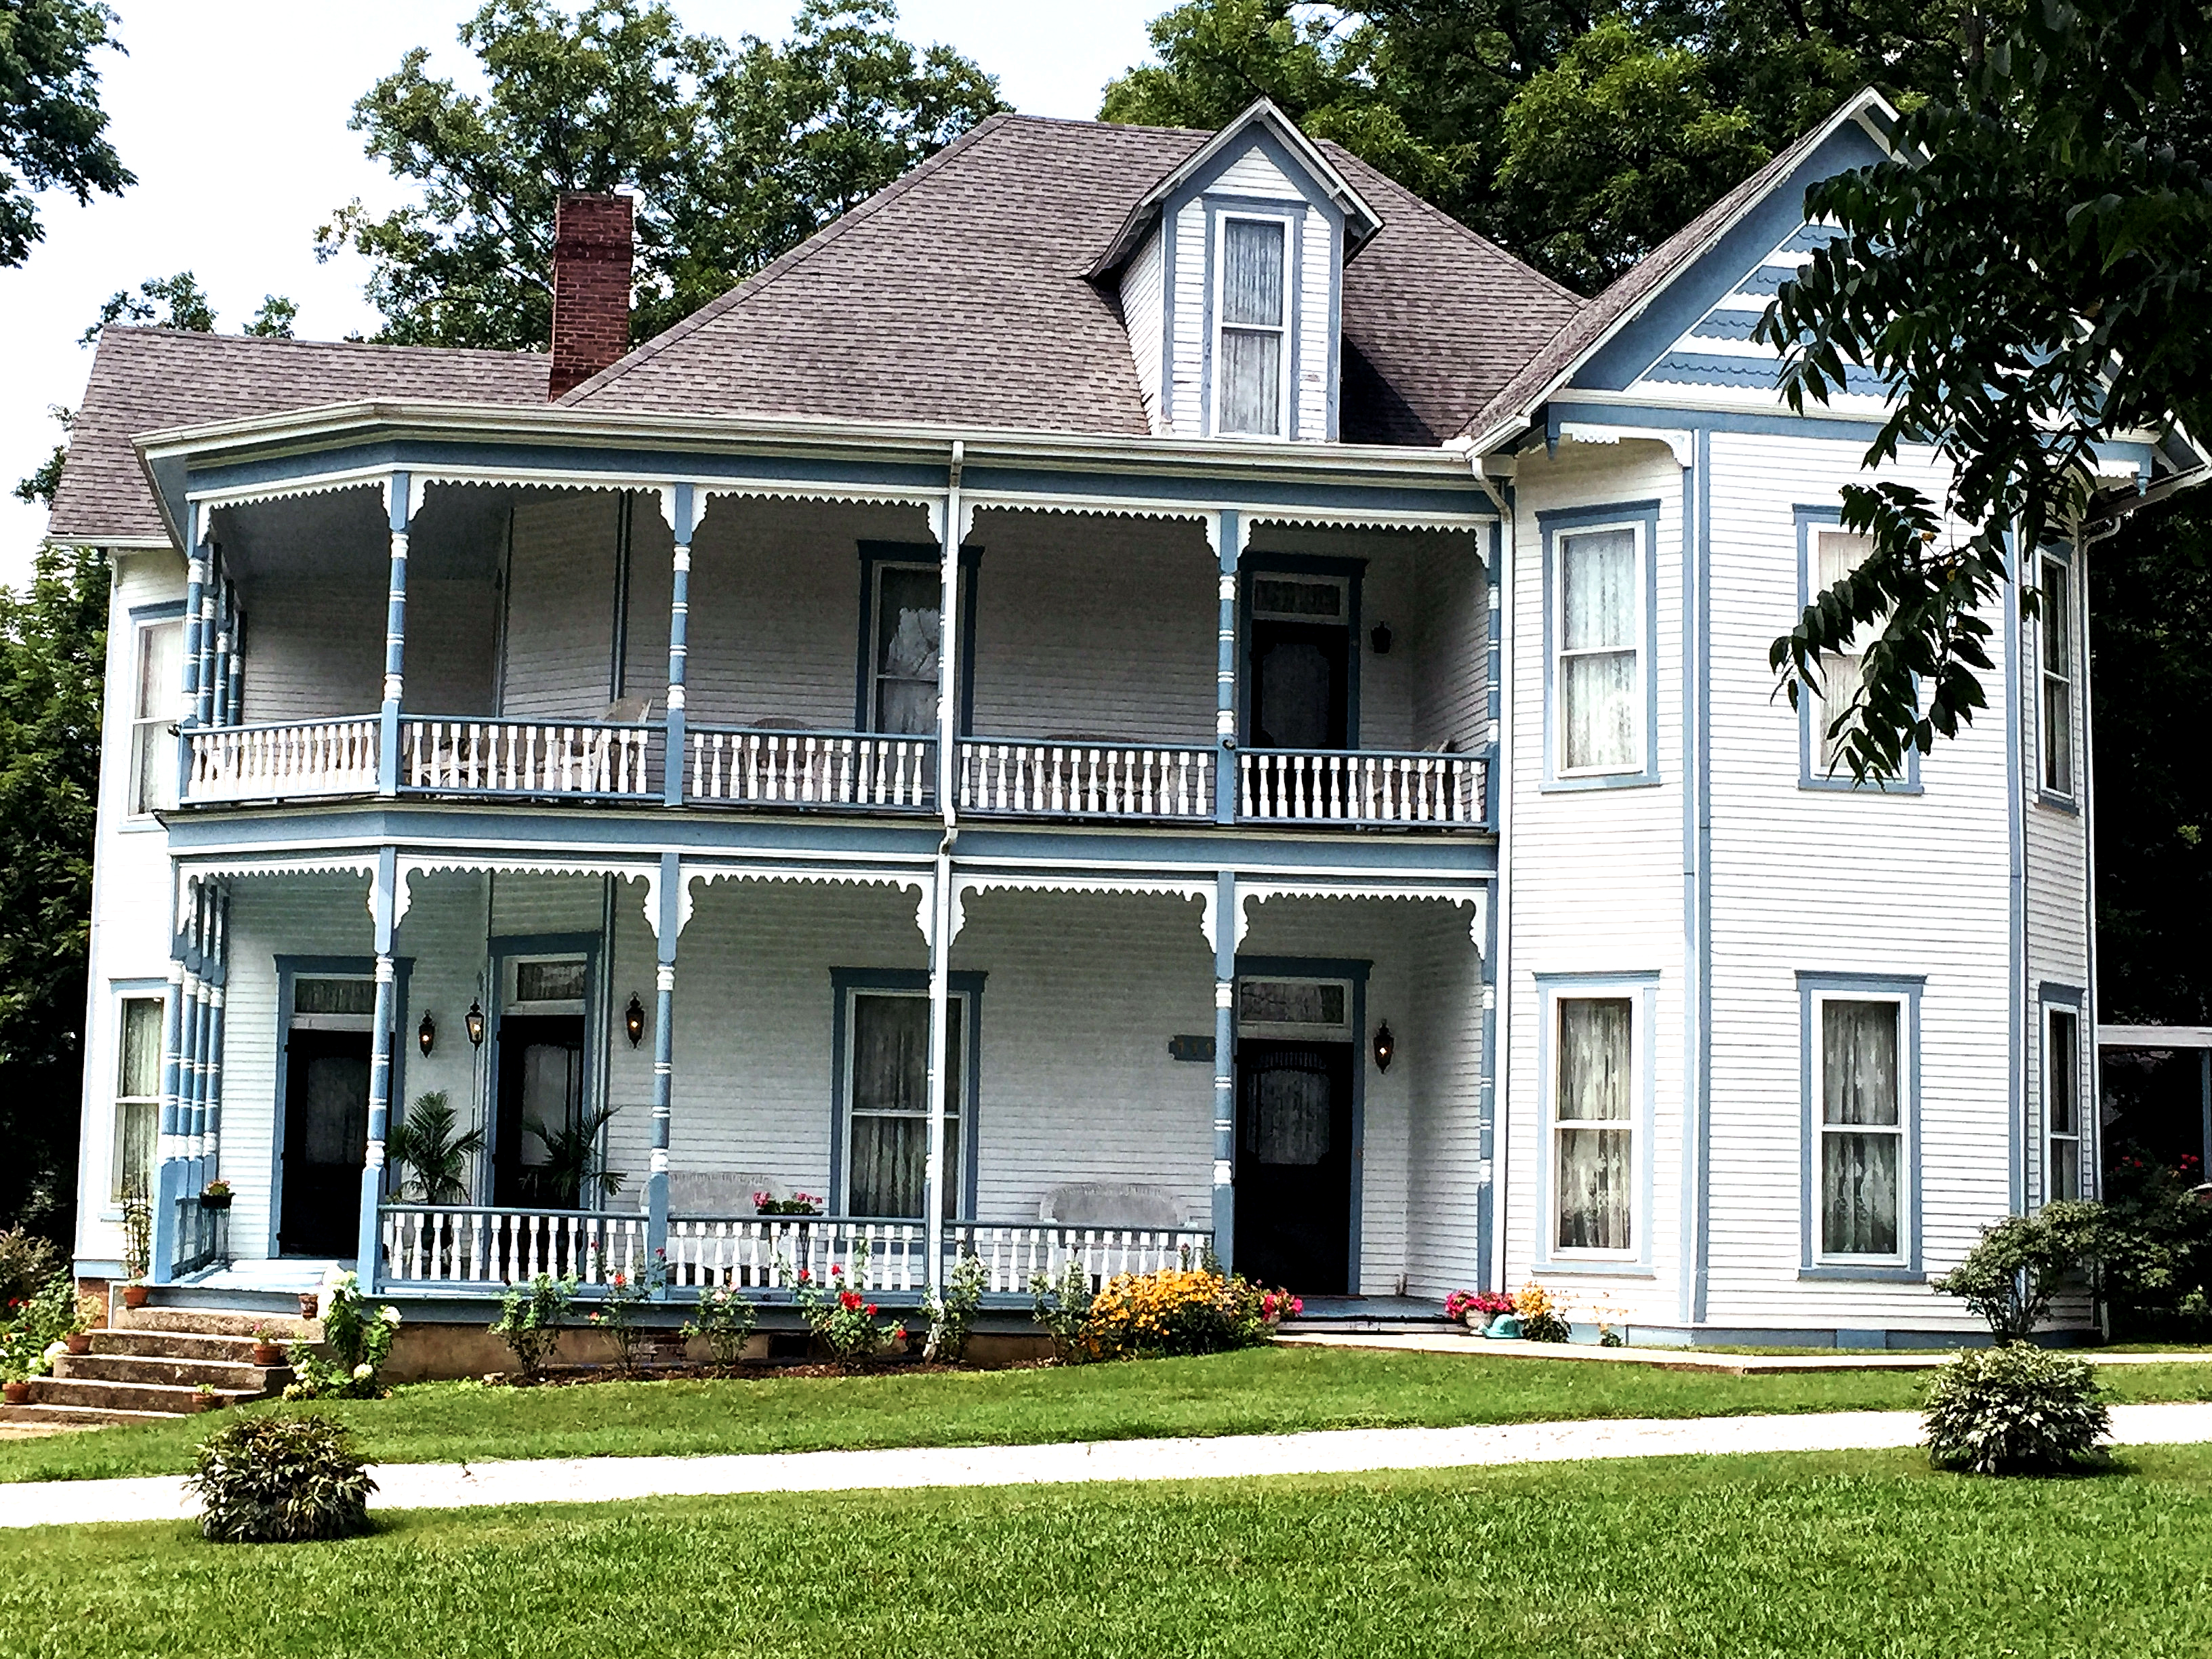 Victorian homes for sale in mississippi - More Old Houses Nearby